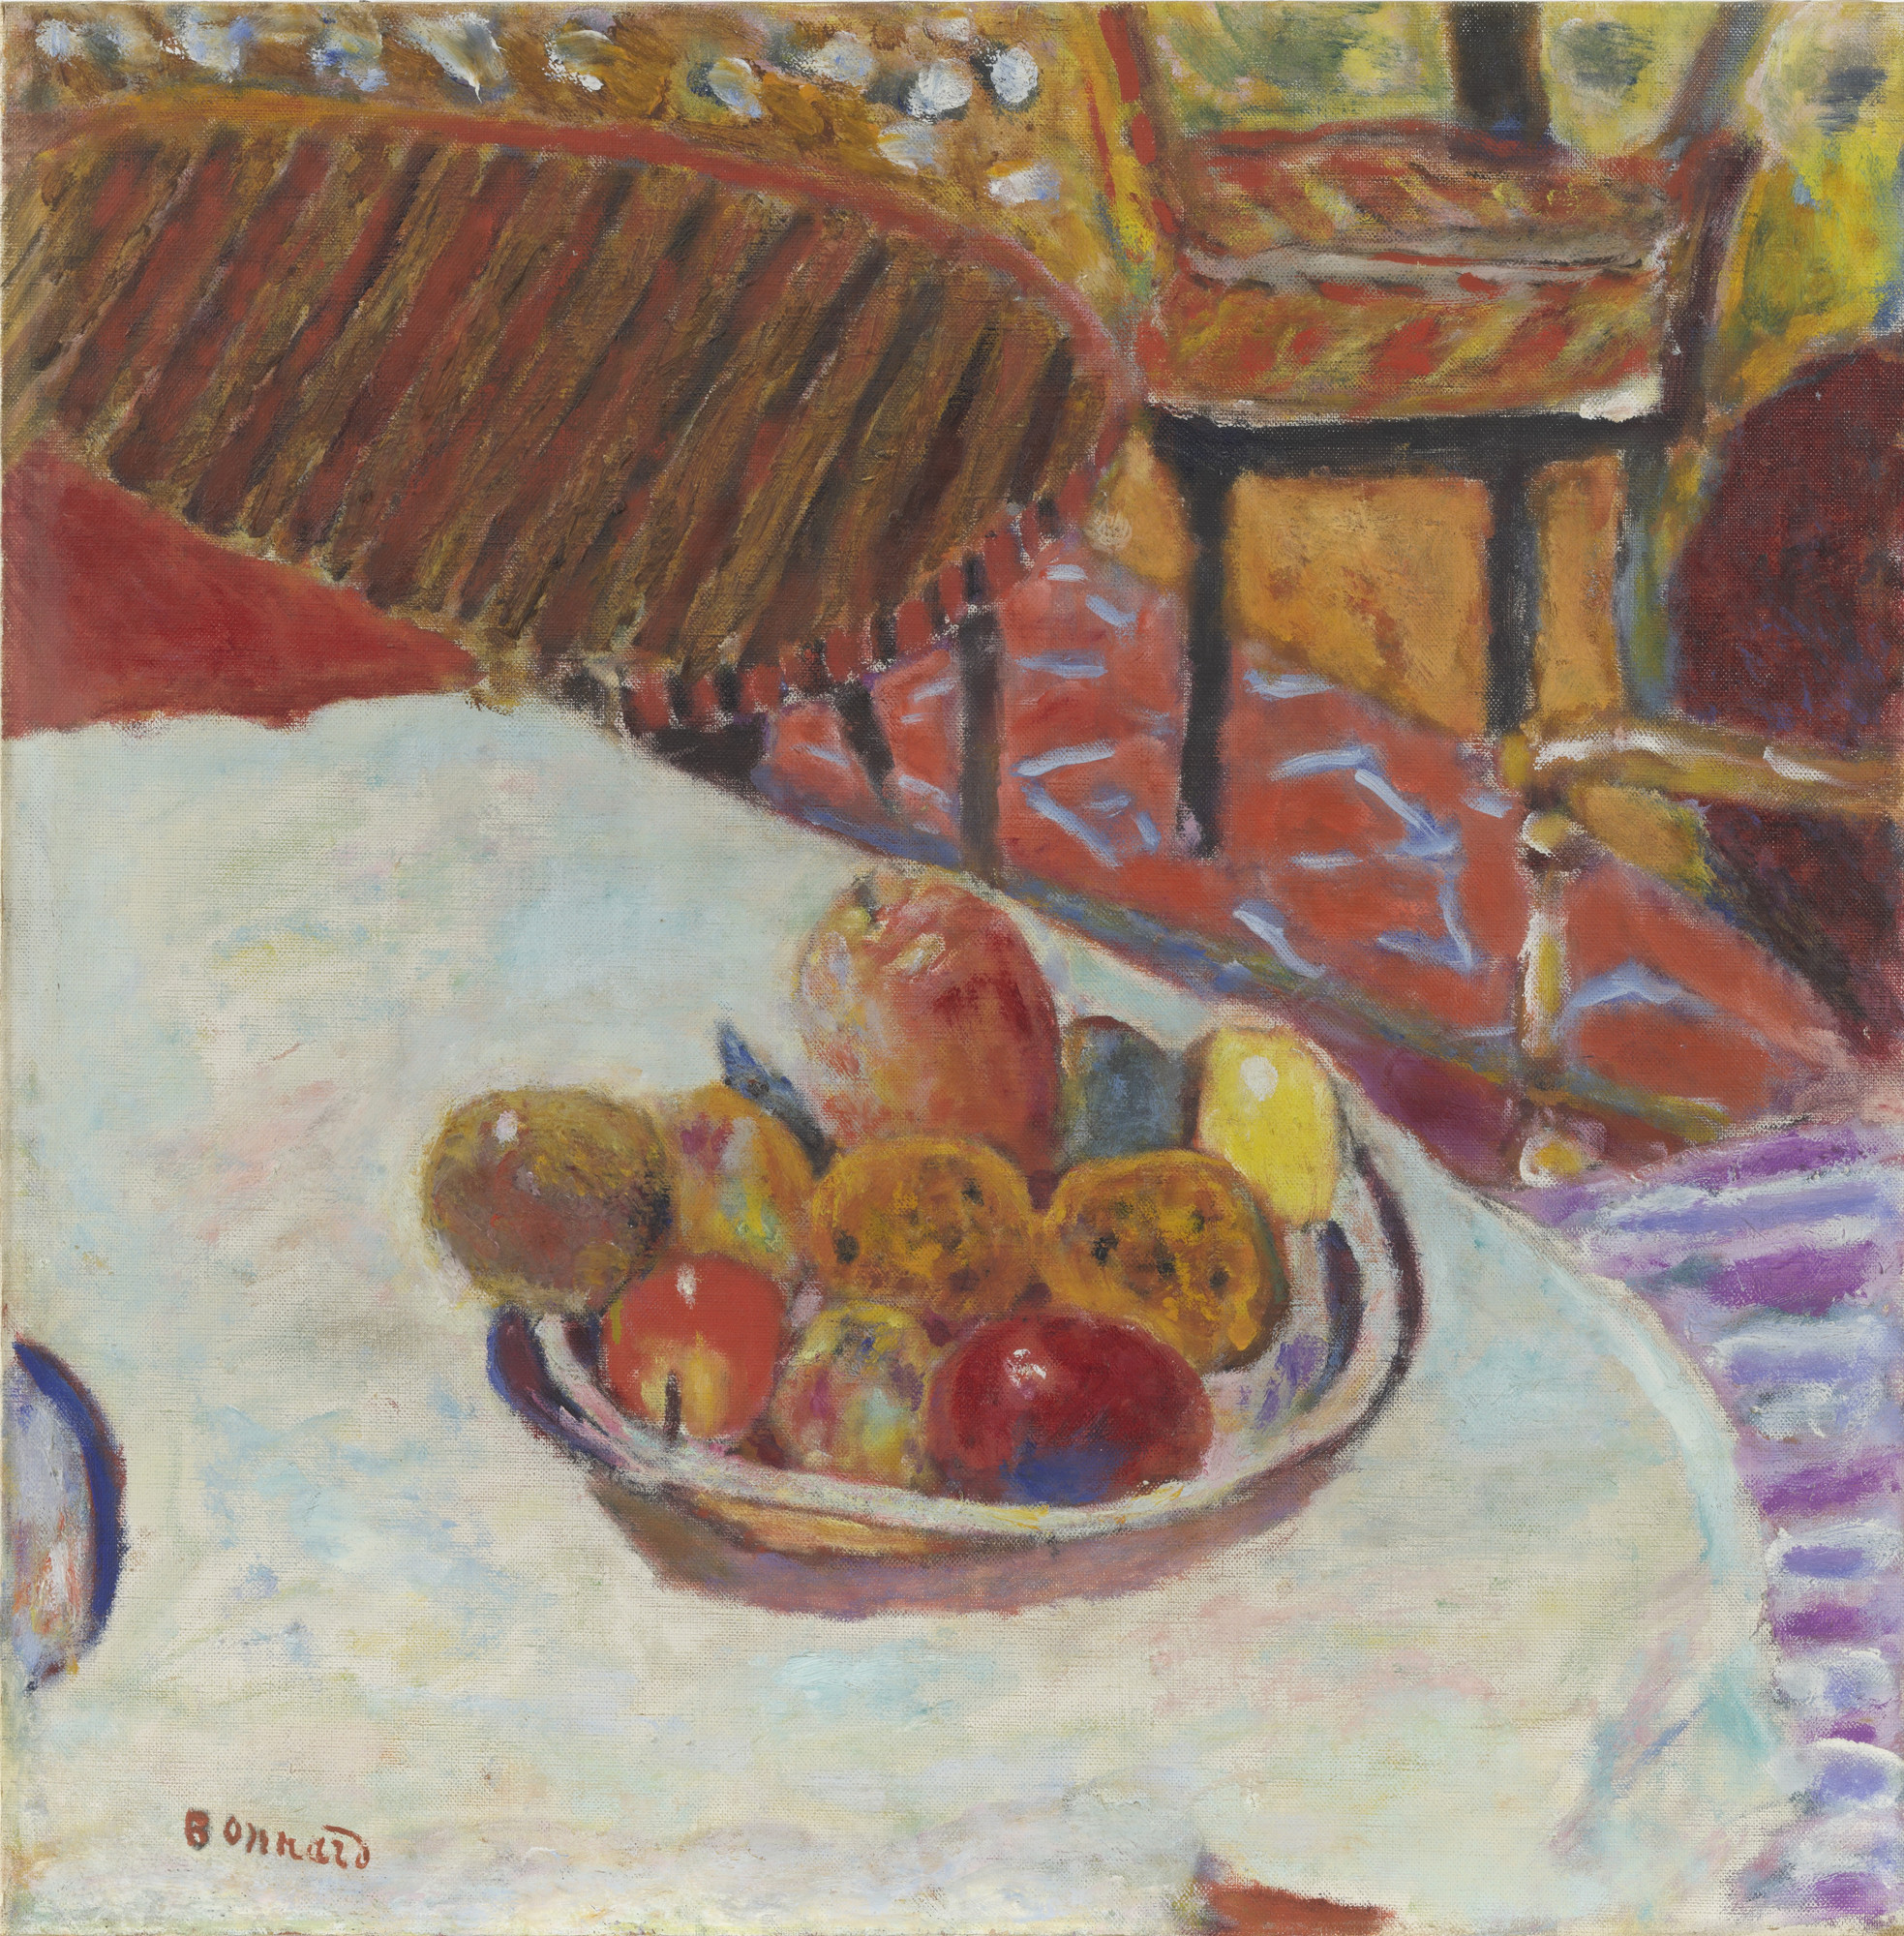 Pierre Bonnard. Still Life (Table with Bowl of Fruit). 1939